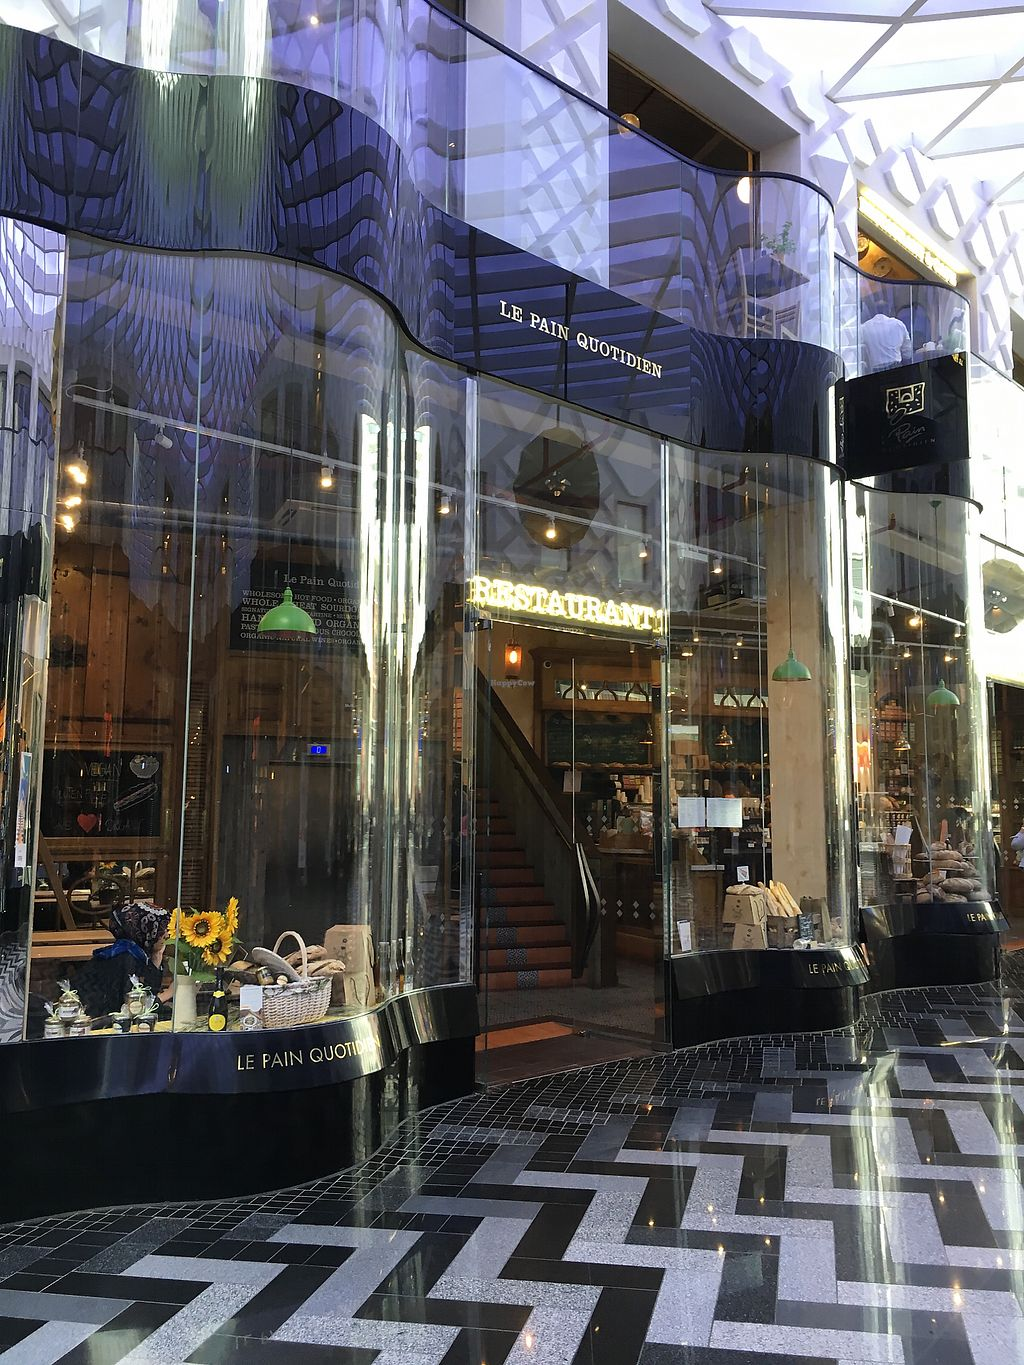 """Photo of Le Pain Quotidien  by <a href=""""/members/profile/hack_man"""">hack_man</a> <br/>outside  <br/> August 5, 2017  - <a href='/contact/abuse/image/84214/289169'>Report</a>"""